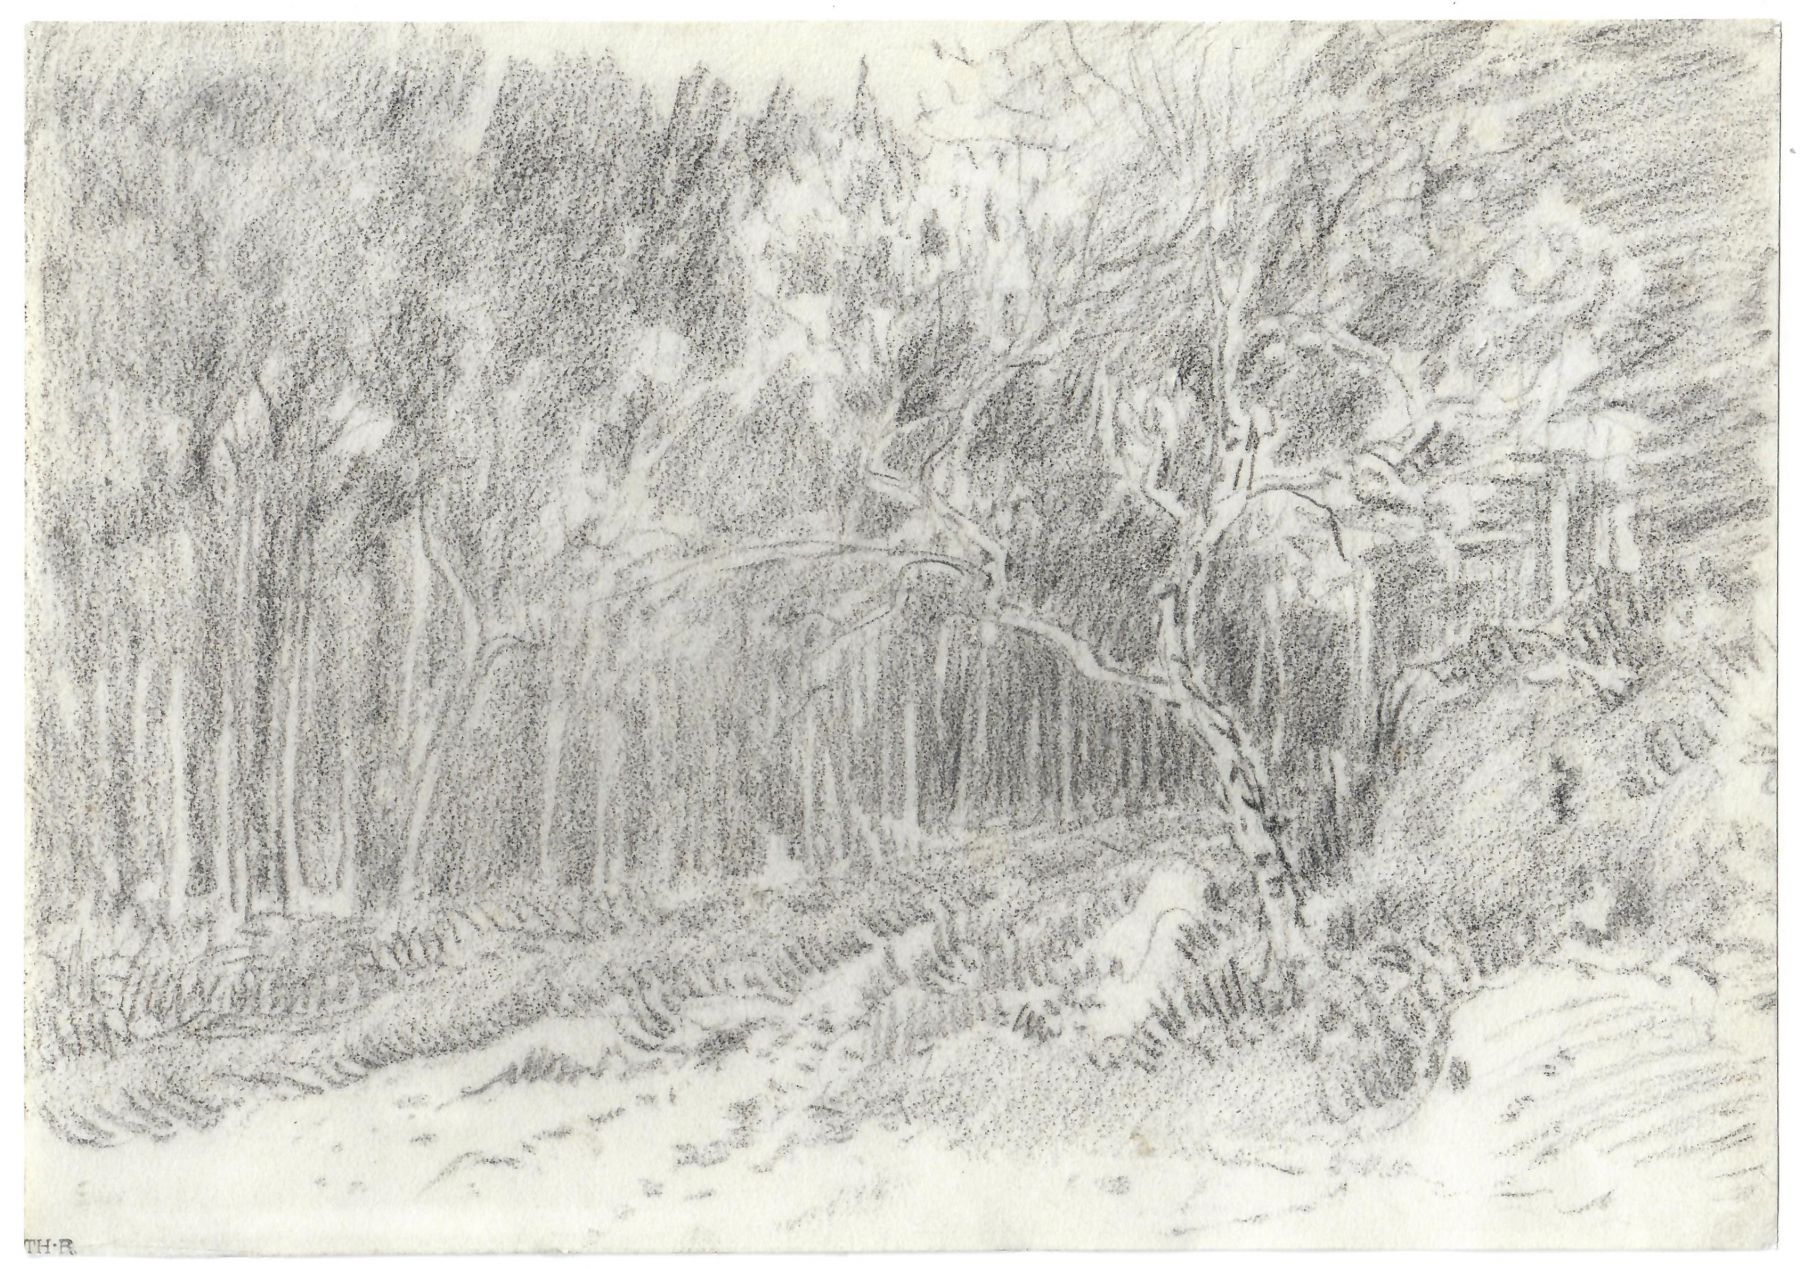 Theodore Rousseau Path through the Forest, c. 1855 Black chalk 7 1/2 x 10 7/8 inches